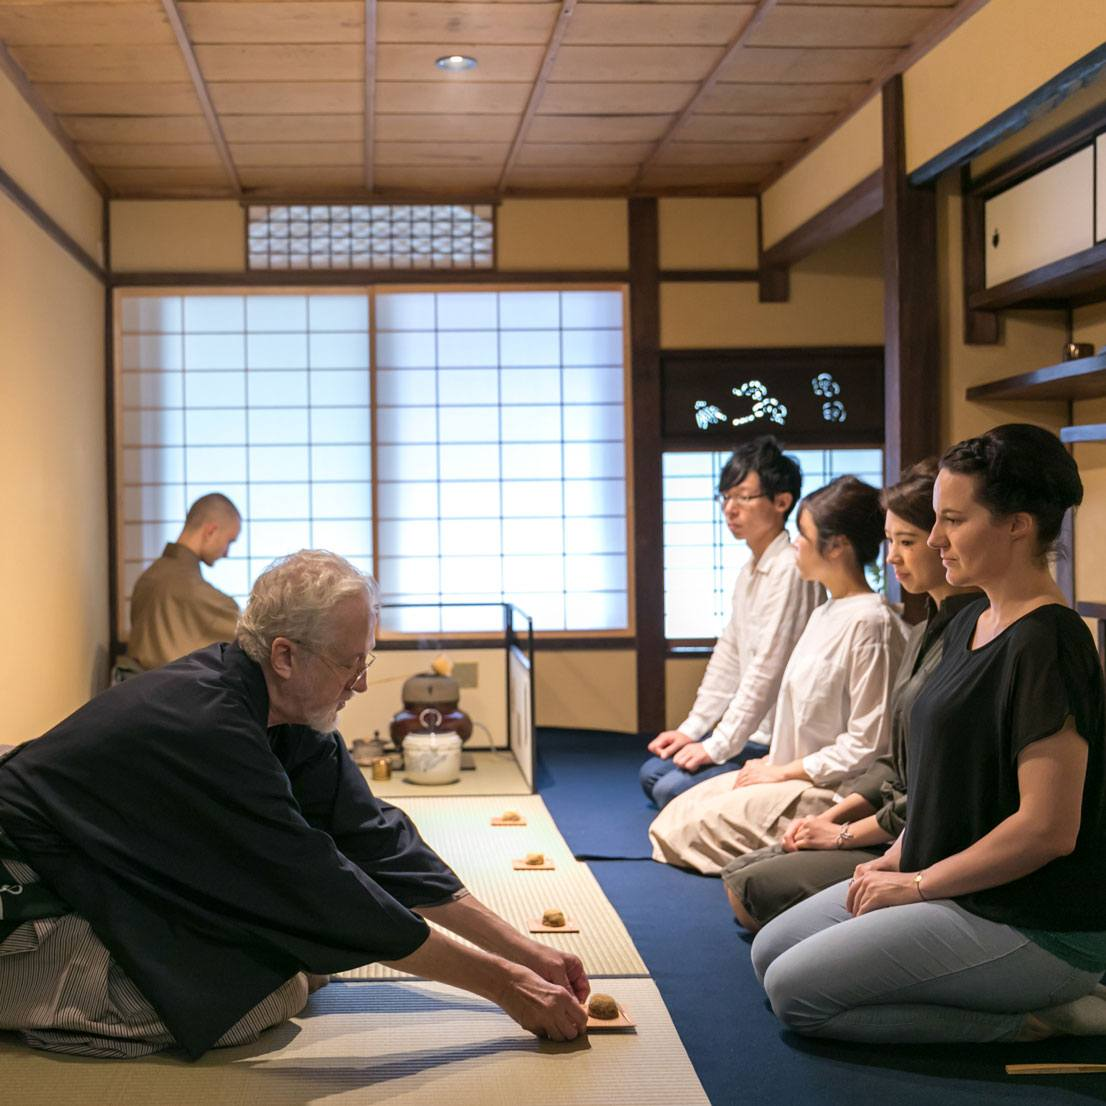 BASIC JAPANESE TEA CEREMONY ETIQUETTE